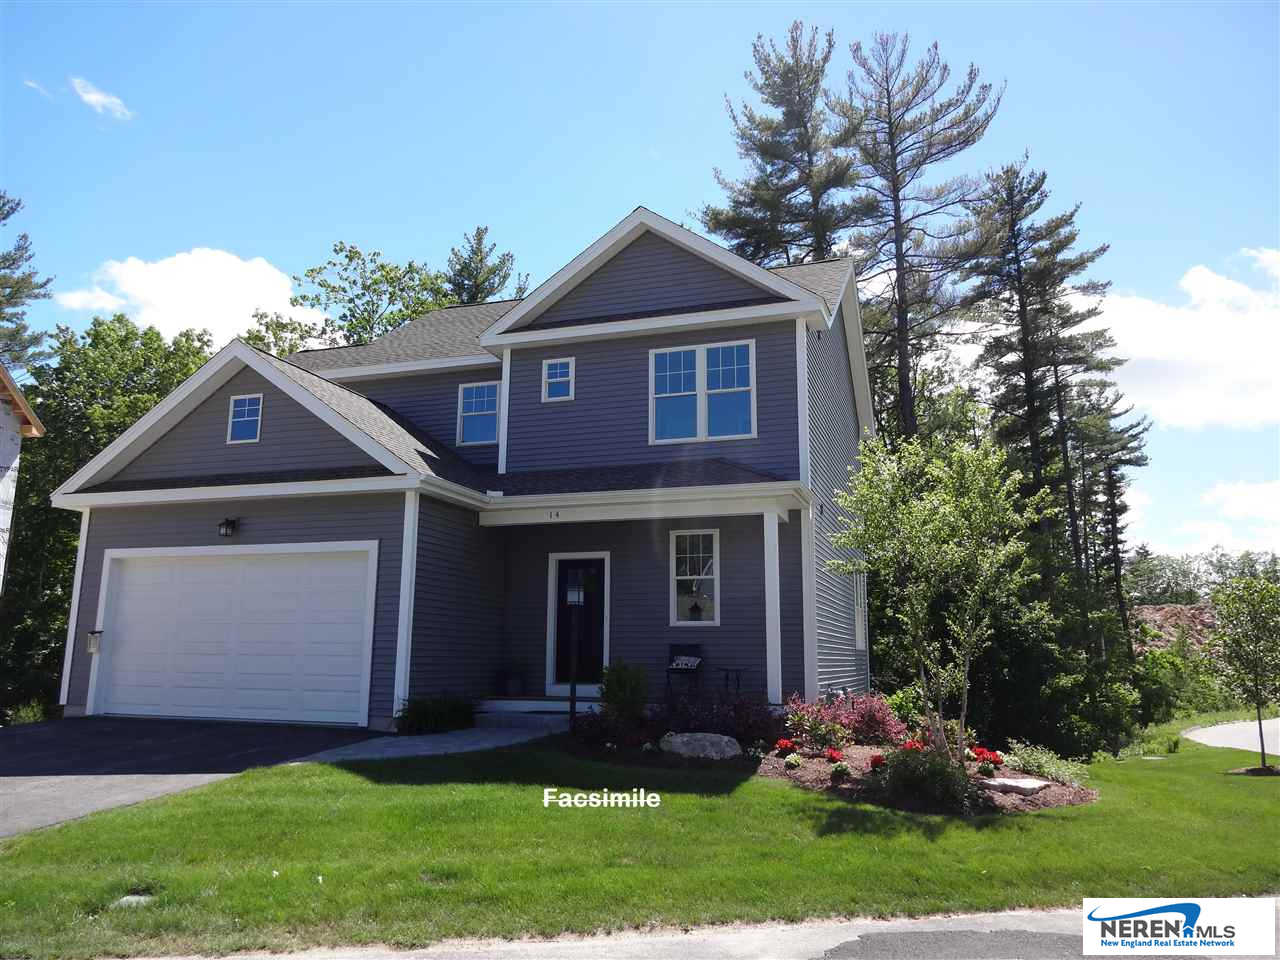 2980 Countryside #22, Manchester, NH 03102 now has a new price of $393,146!